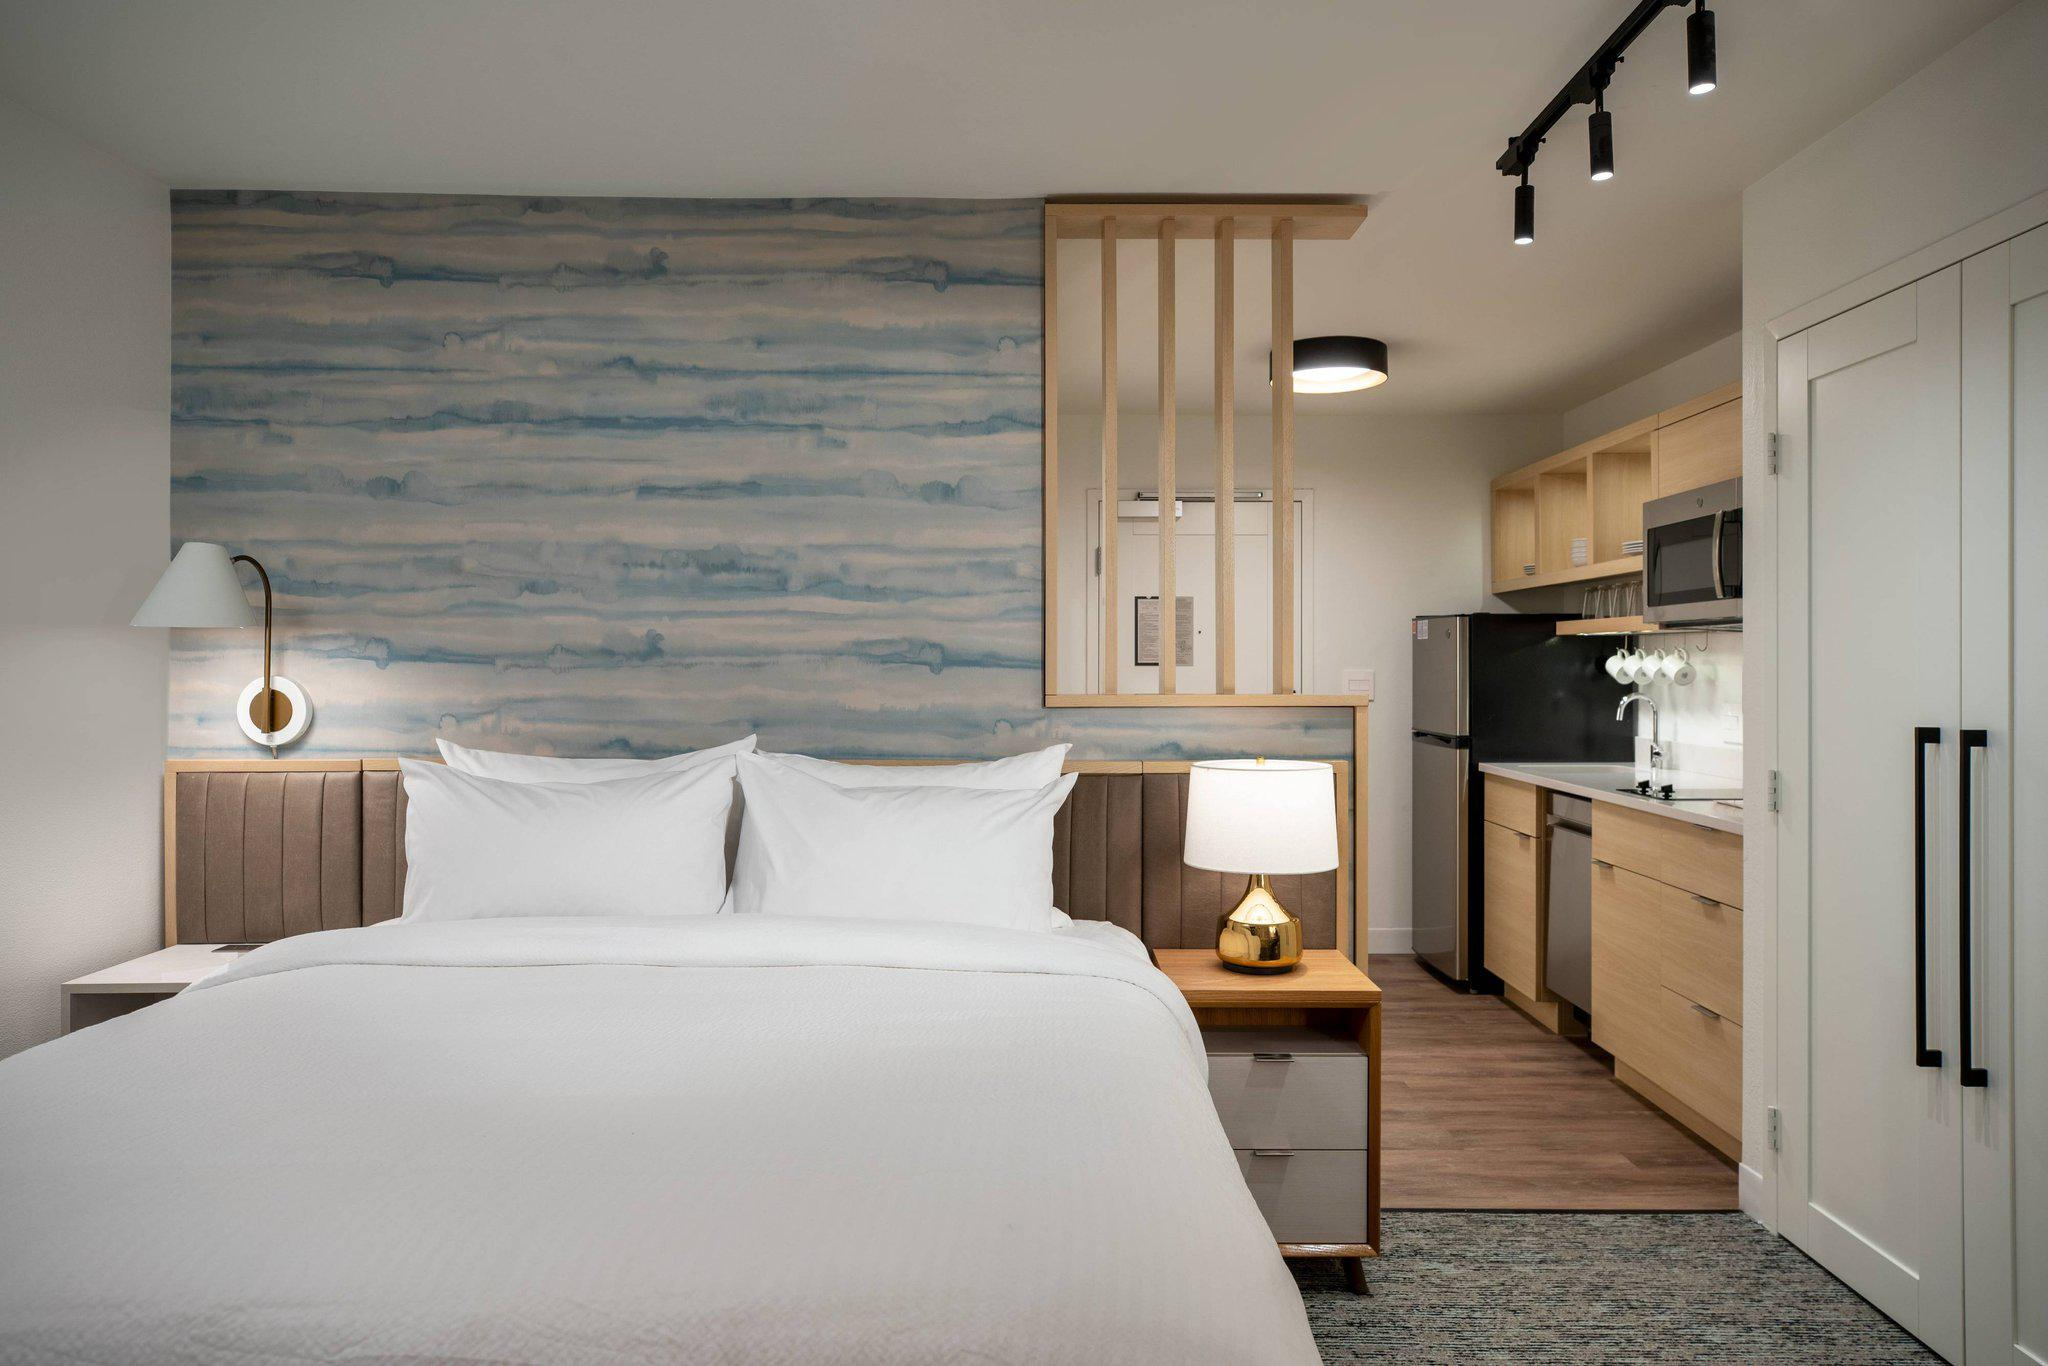 TownePlace Suites by Marriott New York Brooklyn